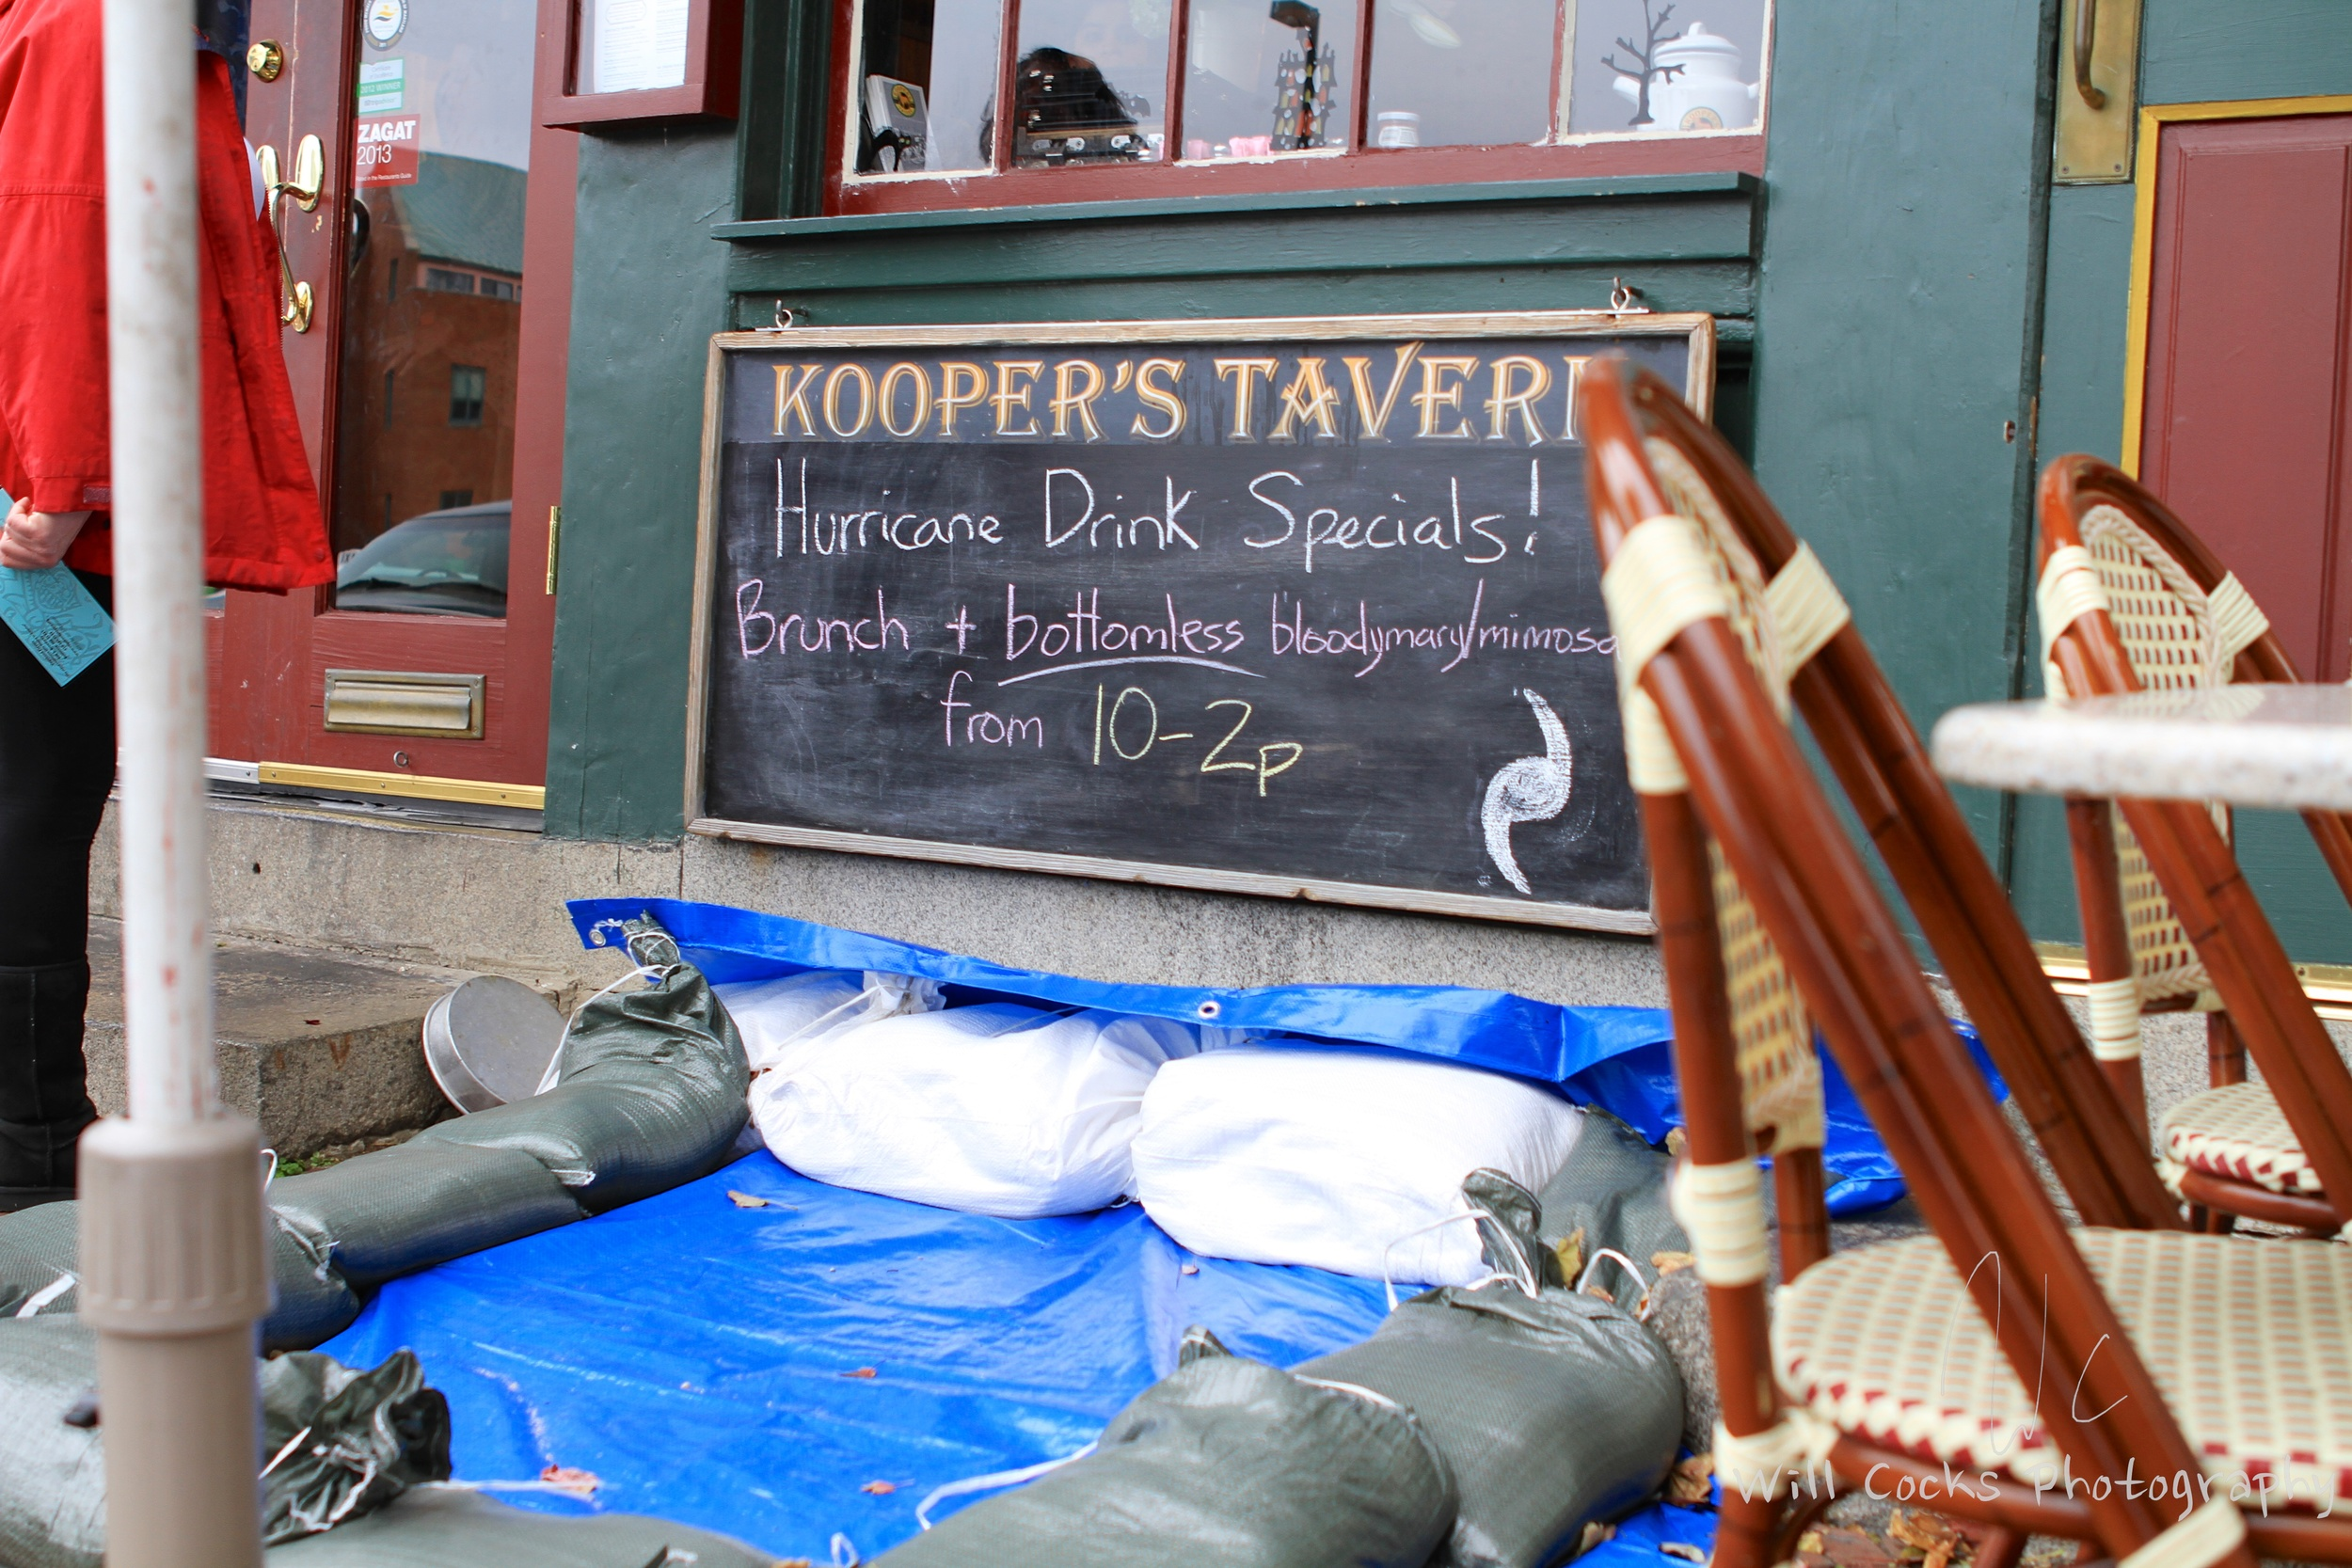 Some watering holes were offering Hurricane Sandy specials